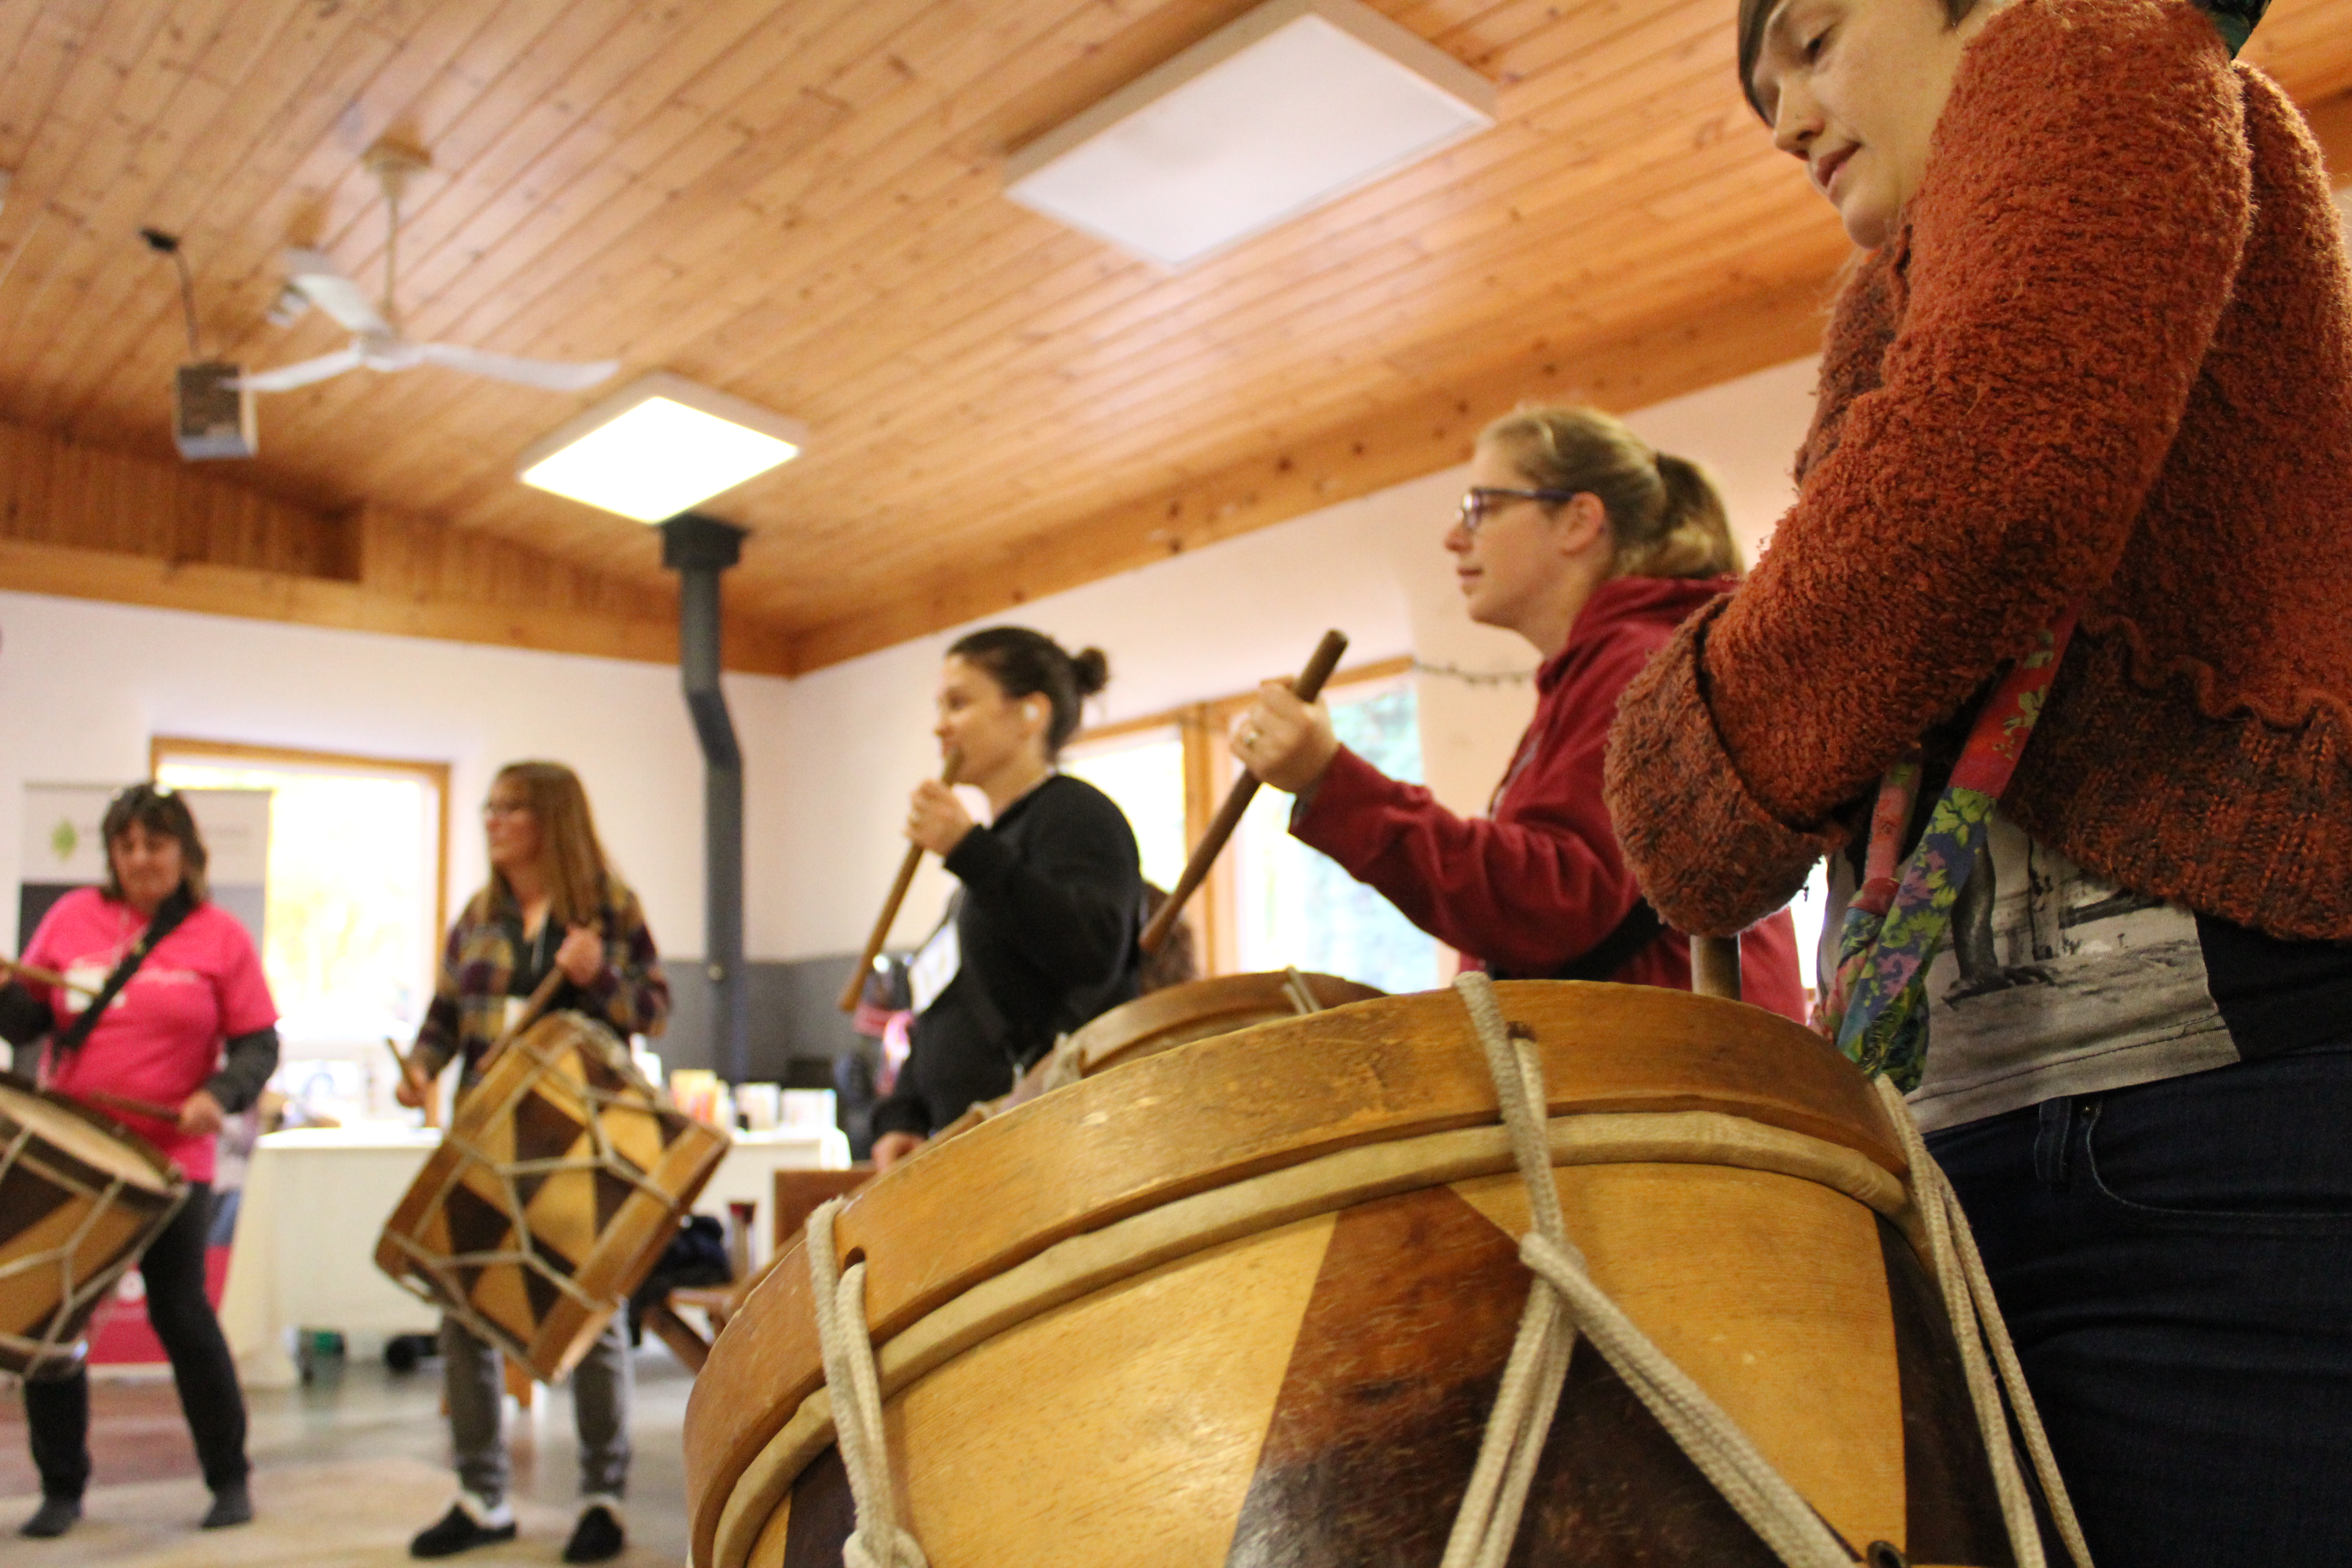 Drumming, community, Mother Earth: Three words that define Baque de Bamba